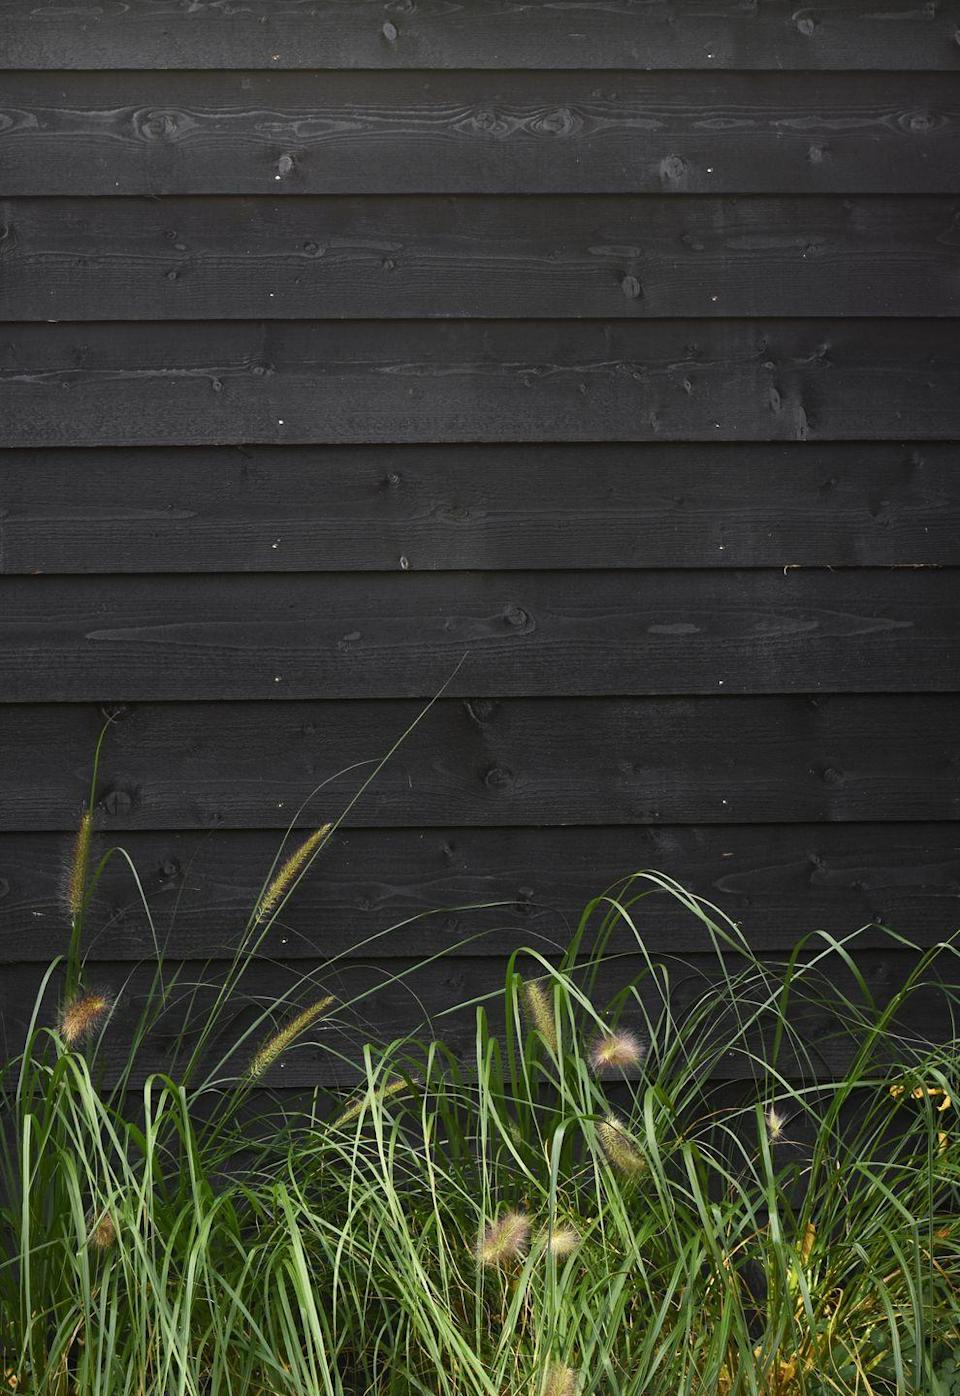 """<p>You'll be surprised by how much a lick of paint can transform an old fence and provide a striking backdrop for greenery and jewel-coloured plants. And the colour you should opt for? Black.</p><p>'The depth this colour gives is magical for garden designers; paint a fence black and it disappears, a shed becomes less of an eyesore and that old bench suddenly becomes a chic focal point,' says Chelsea Flower Show garden designer Andrew Duff.</p><p>This is a great garden idea if you want instant impact. Don't forget, you can give your plant pots a new lease of life by painting them too. </p><p>• Head to <a href=""""https://go.redirectingat.com?id=127X1599956&url=https%3A%2F%2Fwww.homebase.co.uk%2F&sref=https%3A%2F%2Fwww.redonline.co.uk%2Finteriors%2Feditors_choice%2Fg35933369%2Fgarden-ideas-on-a-budget%2F"""" rel=""""nofollow noopener"""" target=""""_blank"""" data-ylk=""""slk:Homebase"""" class=""""link rapid-noclick-resp"""">Homebase</a>, <a href=""""https://go.redirectingat.com?id=127X1599956&url=https%3A%2F%2Fwww.wickes.co.uk%2FProducts%2FGardens%2FExterior-Paint%2BWood-Treatment%2FGarden-Furniture-Treatment%2Fc%2F1015000&sref=https%3A%2F%2Fwww.redonline.co.uk%2Finteriors%2Feditors_choice%2Fg35933369%2Fgarden-ideas-on-a-budget%2F"""" rel=""""nofollow noopener"""" target=""""_blank"""" data-ylk=""""slk:Wickes"""" class=""""link rapid-noclick-resp"""">Wickes</a> or <a href=""""https://go.redirectingat.com?id=127X1599956&url=https%3A%2F%2Fwww.diy.com%2Fdepartments%2Fpainting-decorating%2Fpaint-wood-treatments%2Fexterior-woodcare%2Fshed-fence-paint-treatments%2FDIY1624152.cat&sref=https%3A%2F%2Fwww.redonline.co.uk%2Finteriors%2Feditors_choice%2Fg35933369%2Fgarden-ideas-on-a-budget%2F"""" rel=""""nofollow noopener"""" target=""""_blank"""" data-ylk=""""slk:B&Q"""" class=""""link rapid-noclick-resp"""">B&Q</a> for garden paint. </p>"""